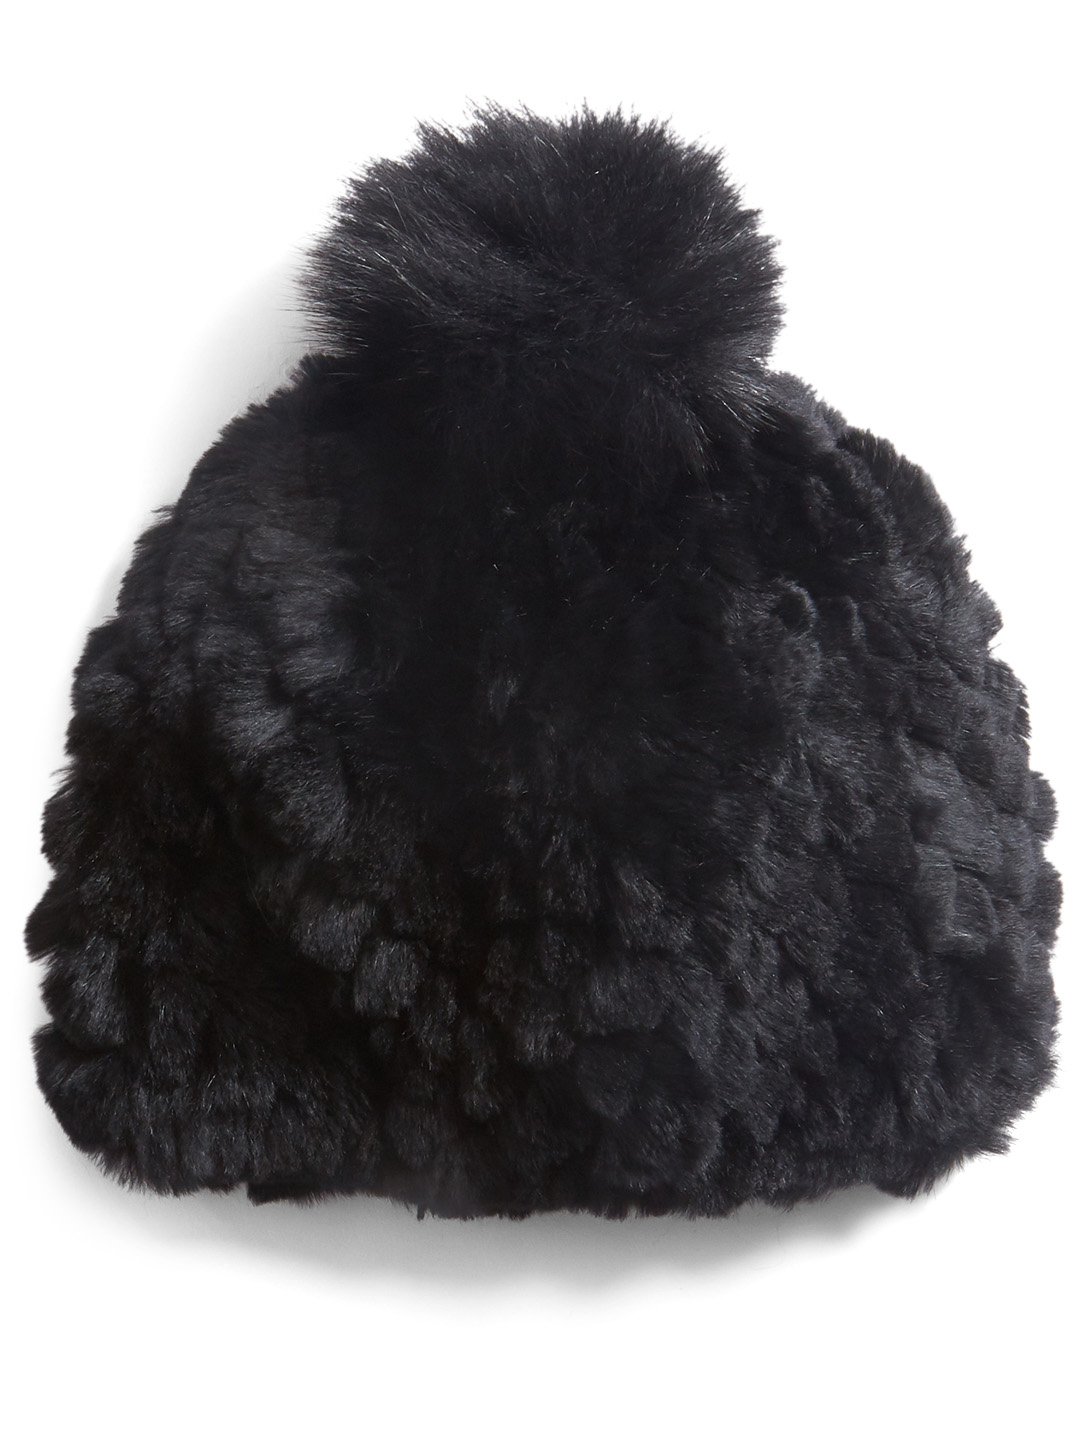 POLOGEORGIS Knit Rabbit Toque With Fur Pom-Pom Womens Black